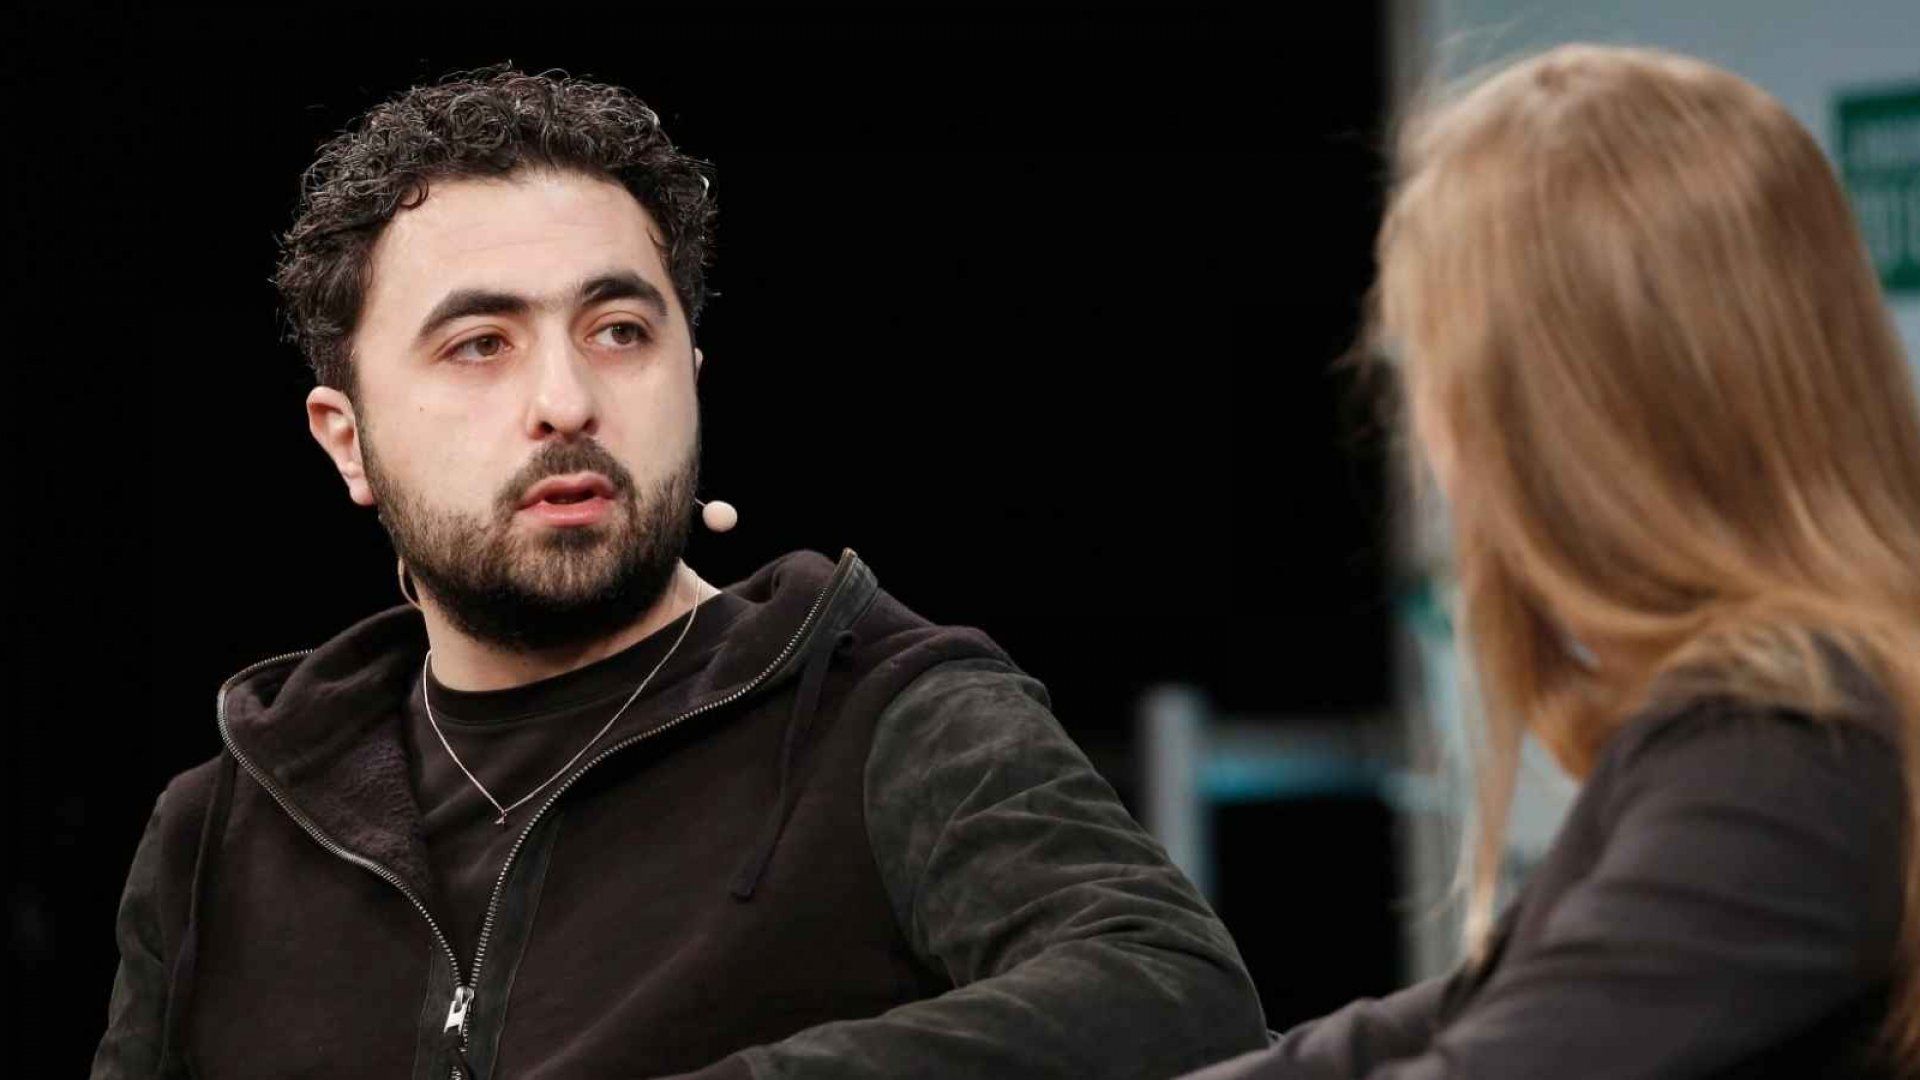 DeepMind co-founder Mustafa Suleyman. The London-based company was acquired by Google in 2014.